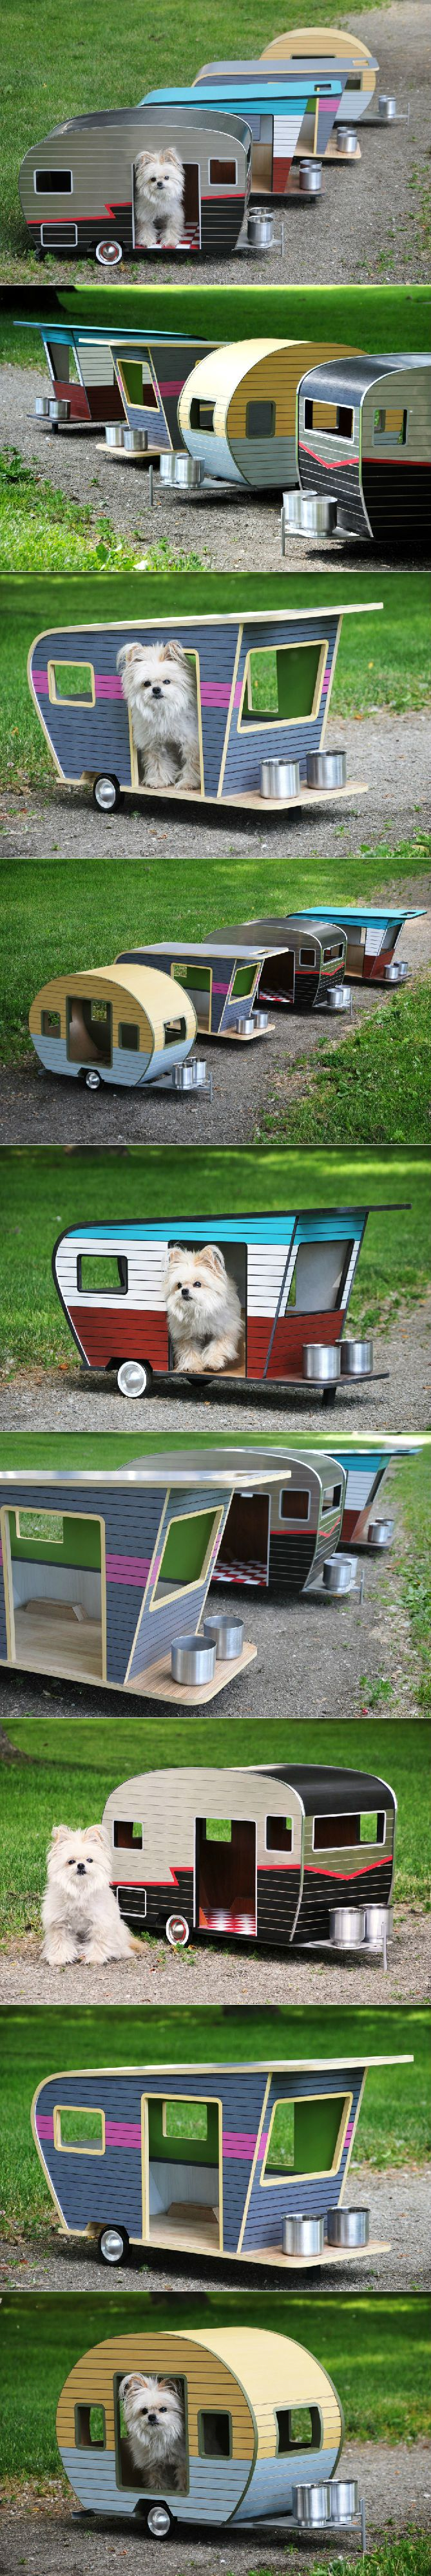 Cool Dog House Upgrade: Instantly-Endearing Pet Trailer Designs. Unique dog -sized